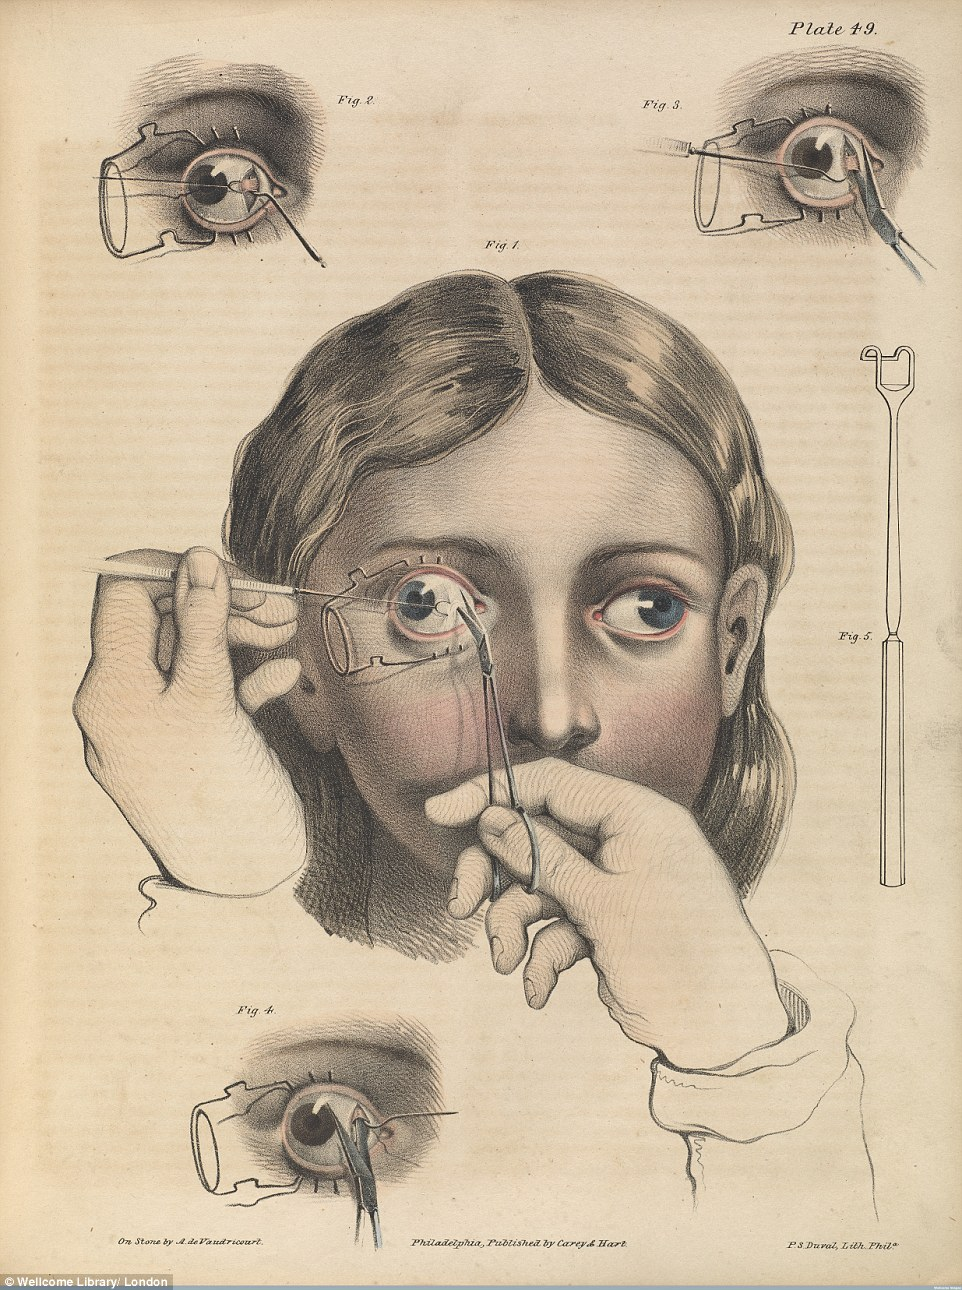 Drawn brains surgical  nature Wellcome Picture an